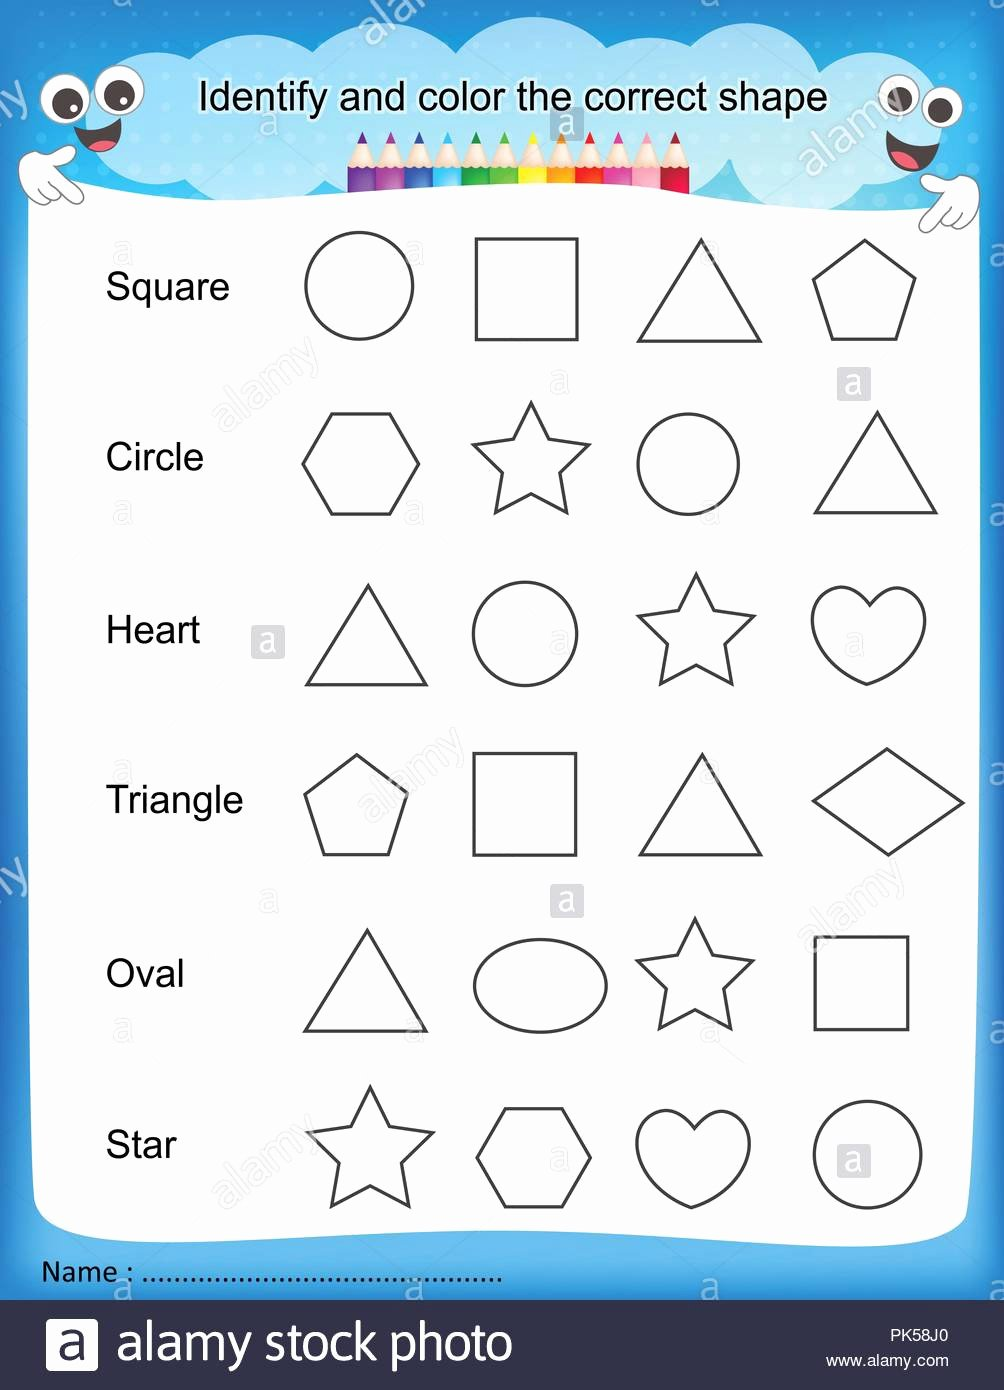 Identifying Shapes Worksheets for Preschoolers Ideas Worksheet Identify and Color the Correct Shape Colorful